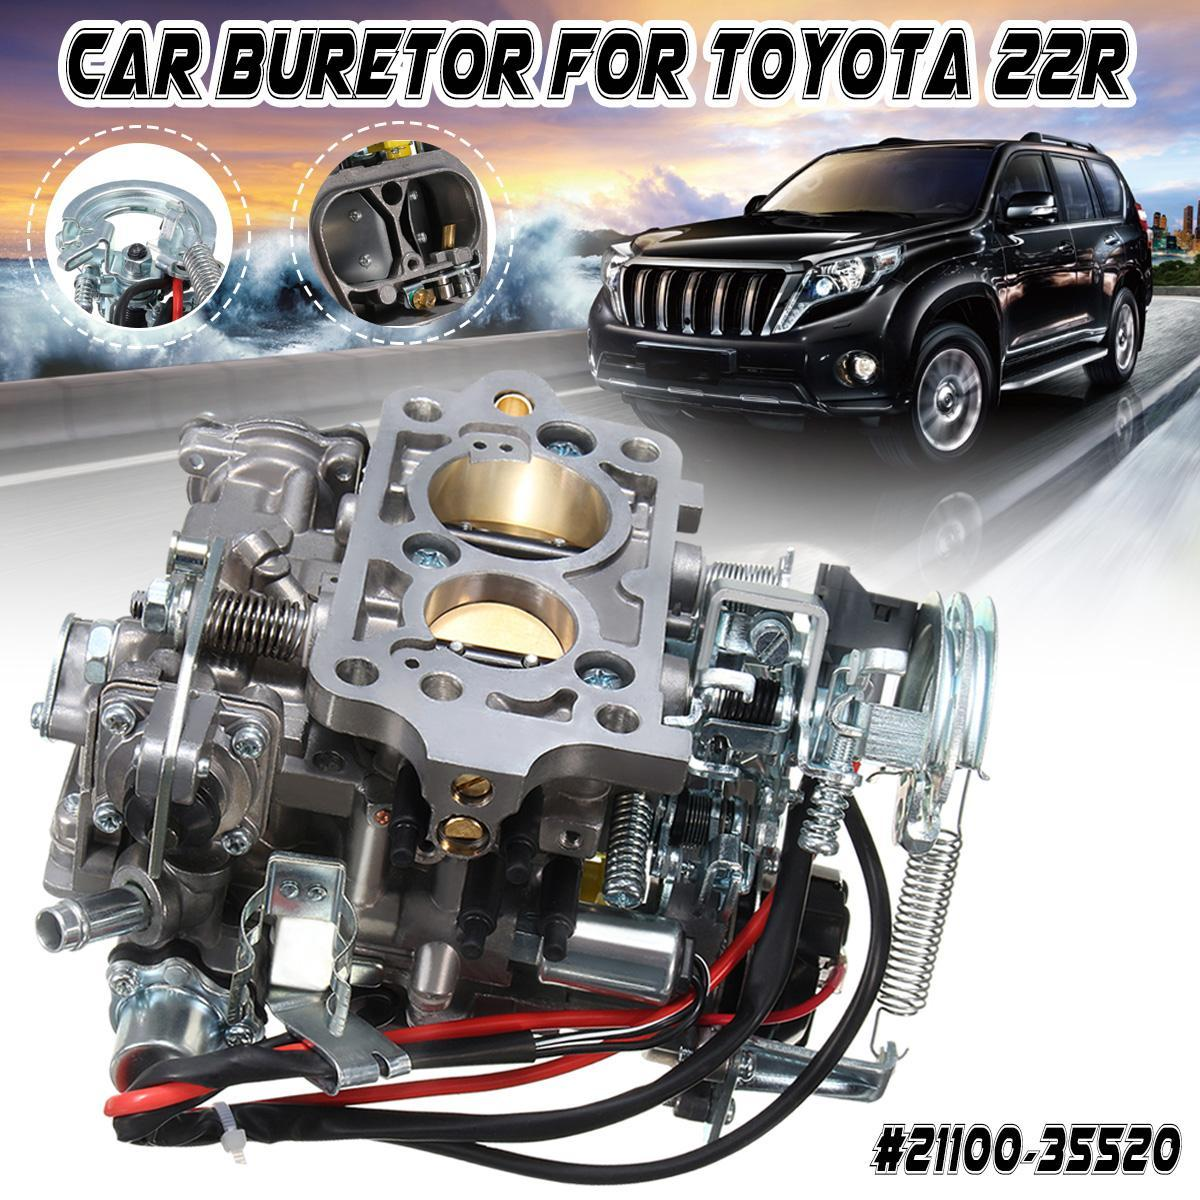 hight resolution of product details of new carburetor replacement for toyota 22r asian style engines carb 21100 35520